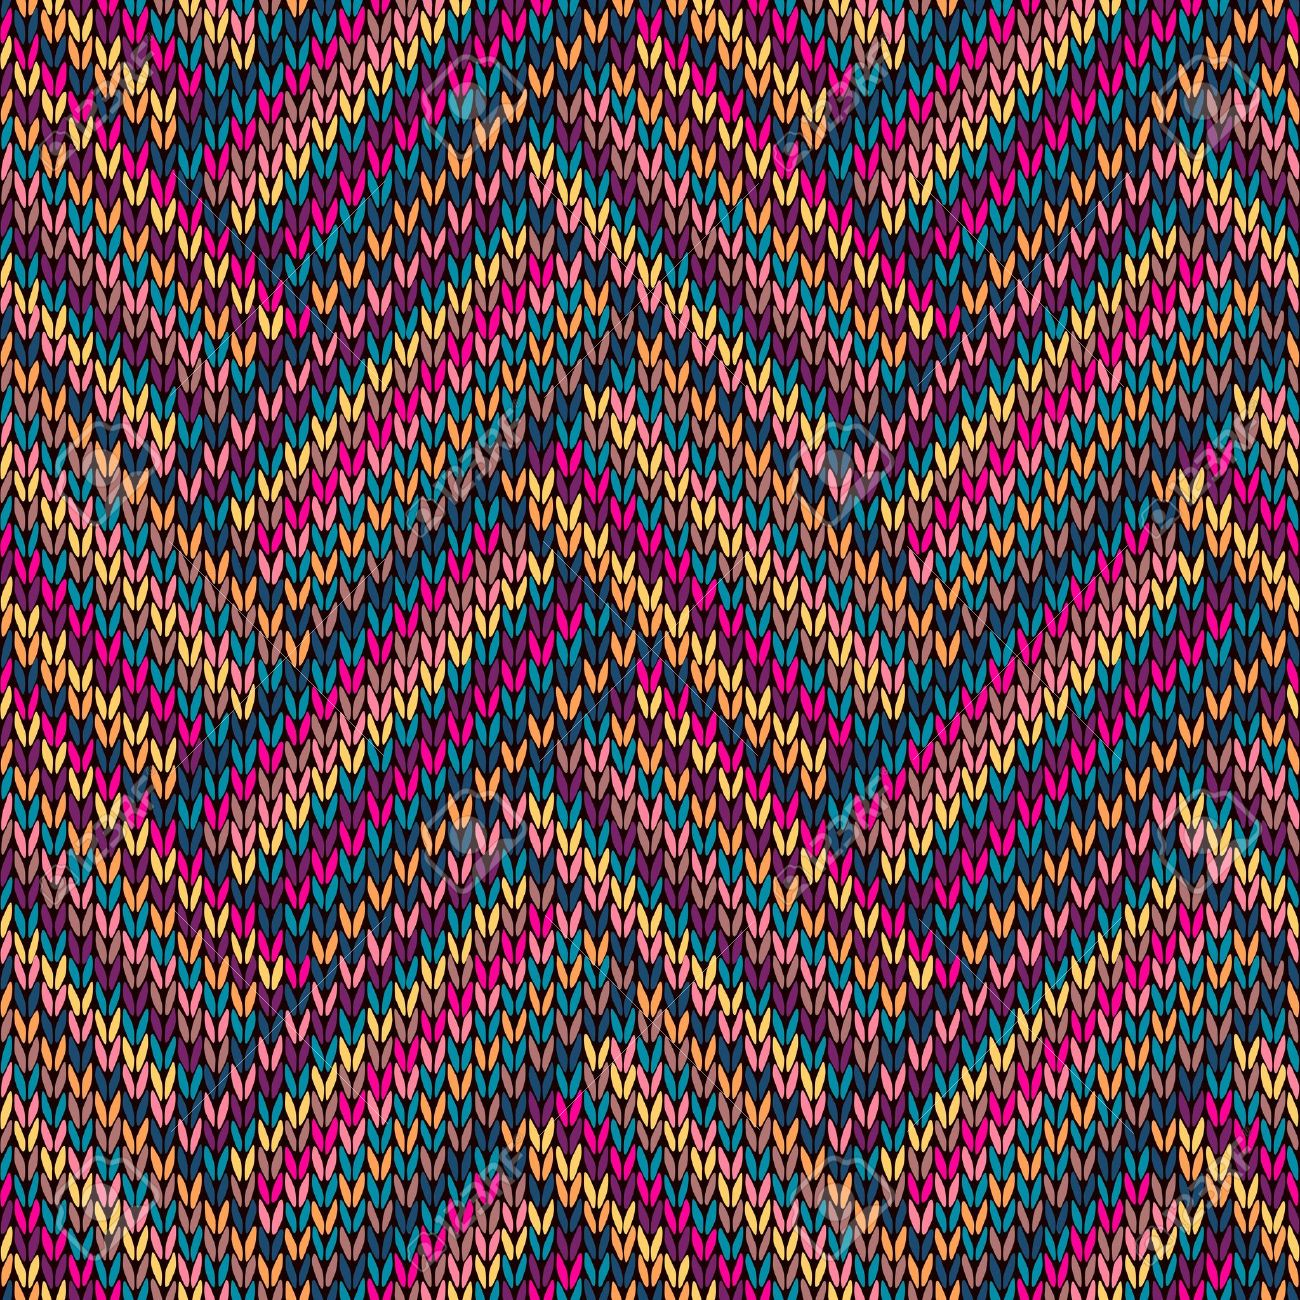 Multicolored Seamless Funny Knitted Pattern Royalty Free Cliparts ...